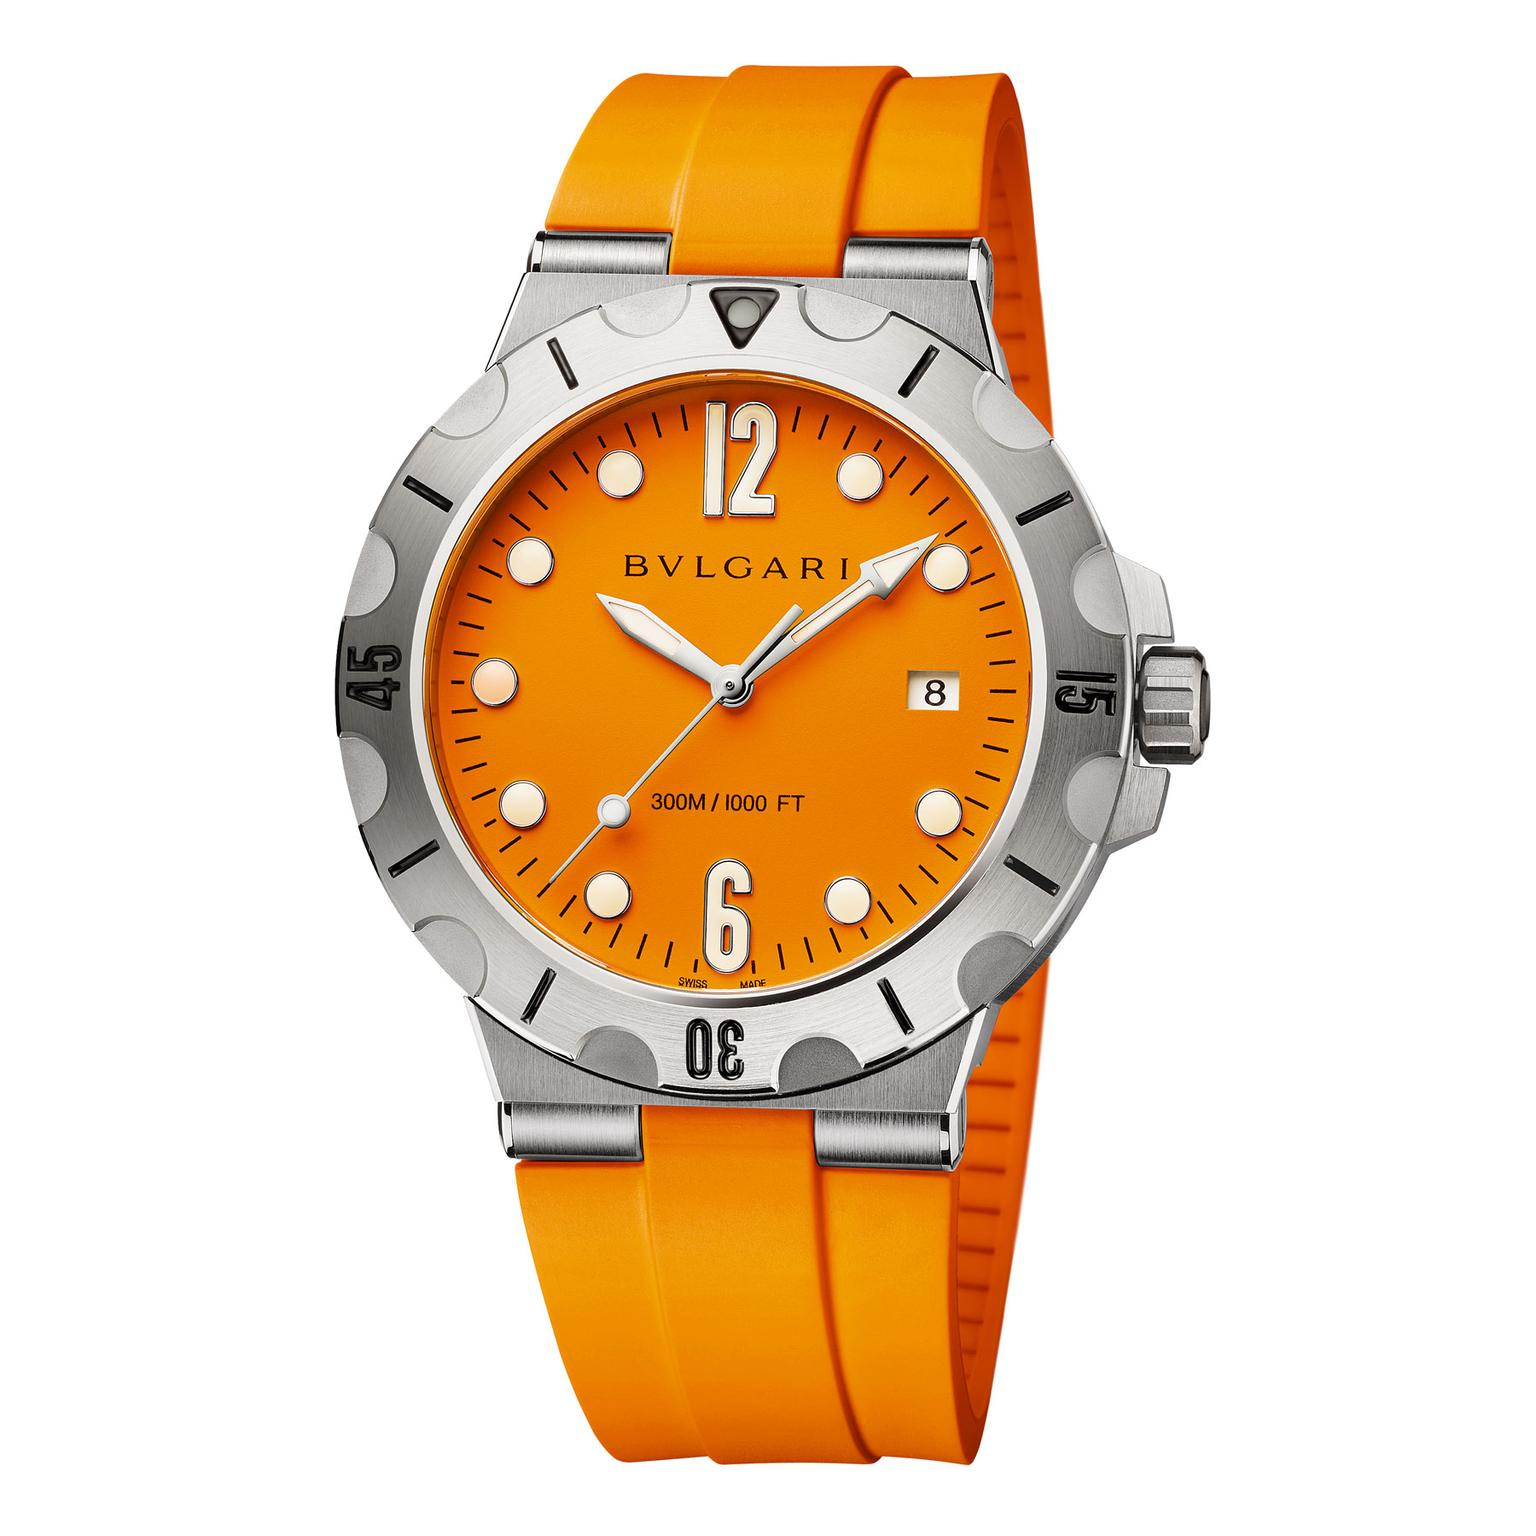 Bulgari Diagono Scuba watch with orange dial